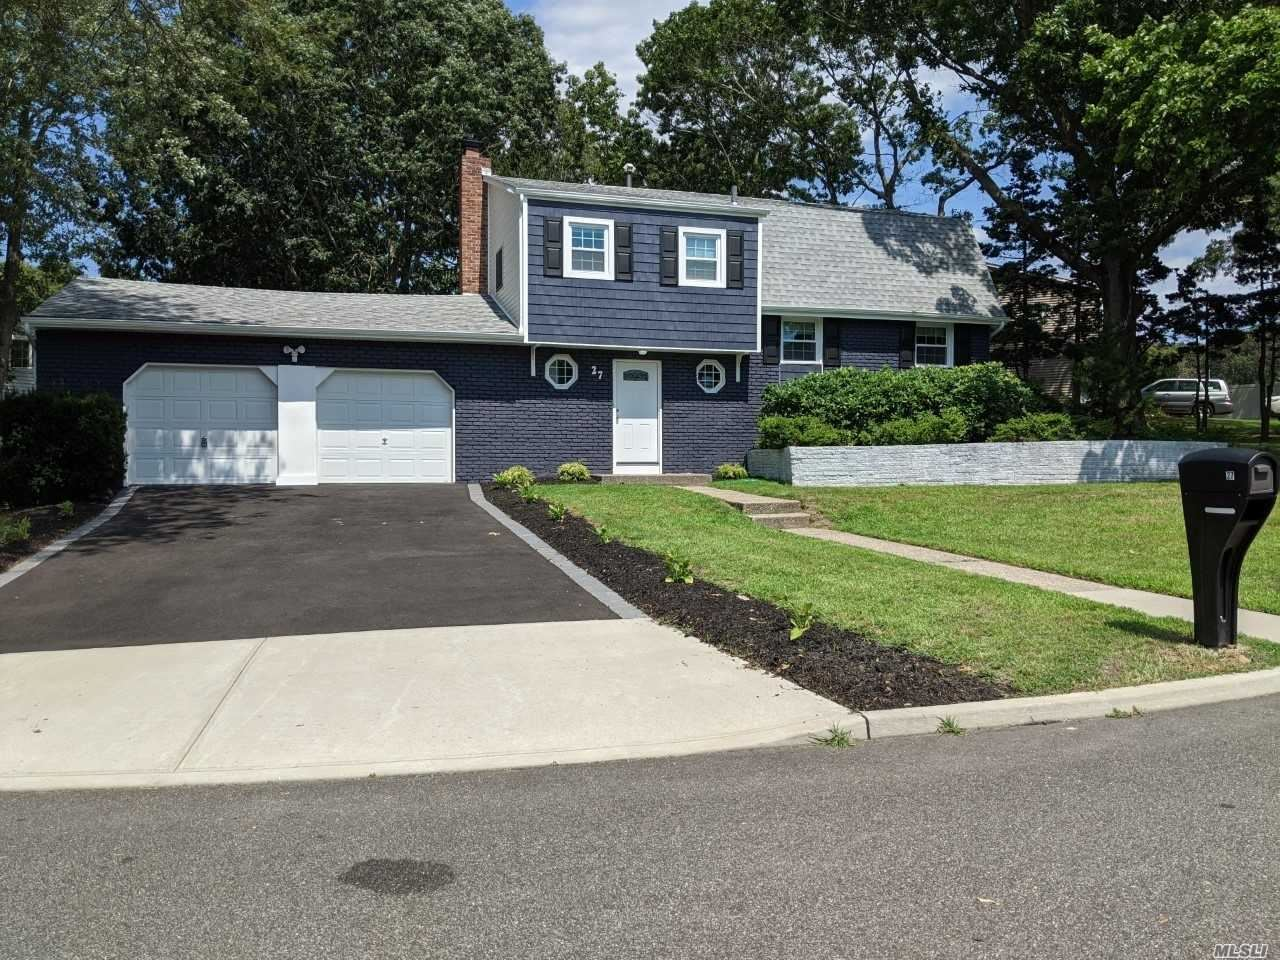 27 Camp Dr, Selden, NY 11784 - MLS#: 3240883